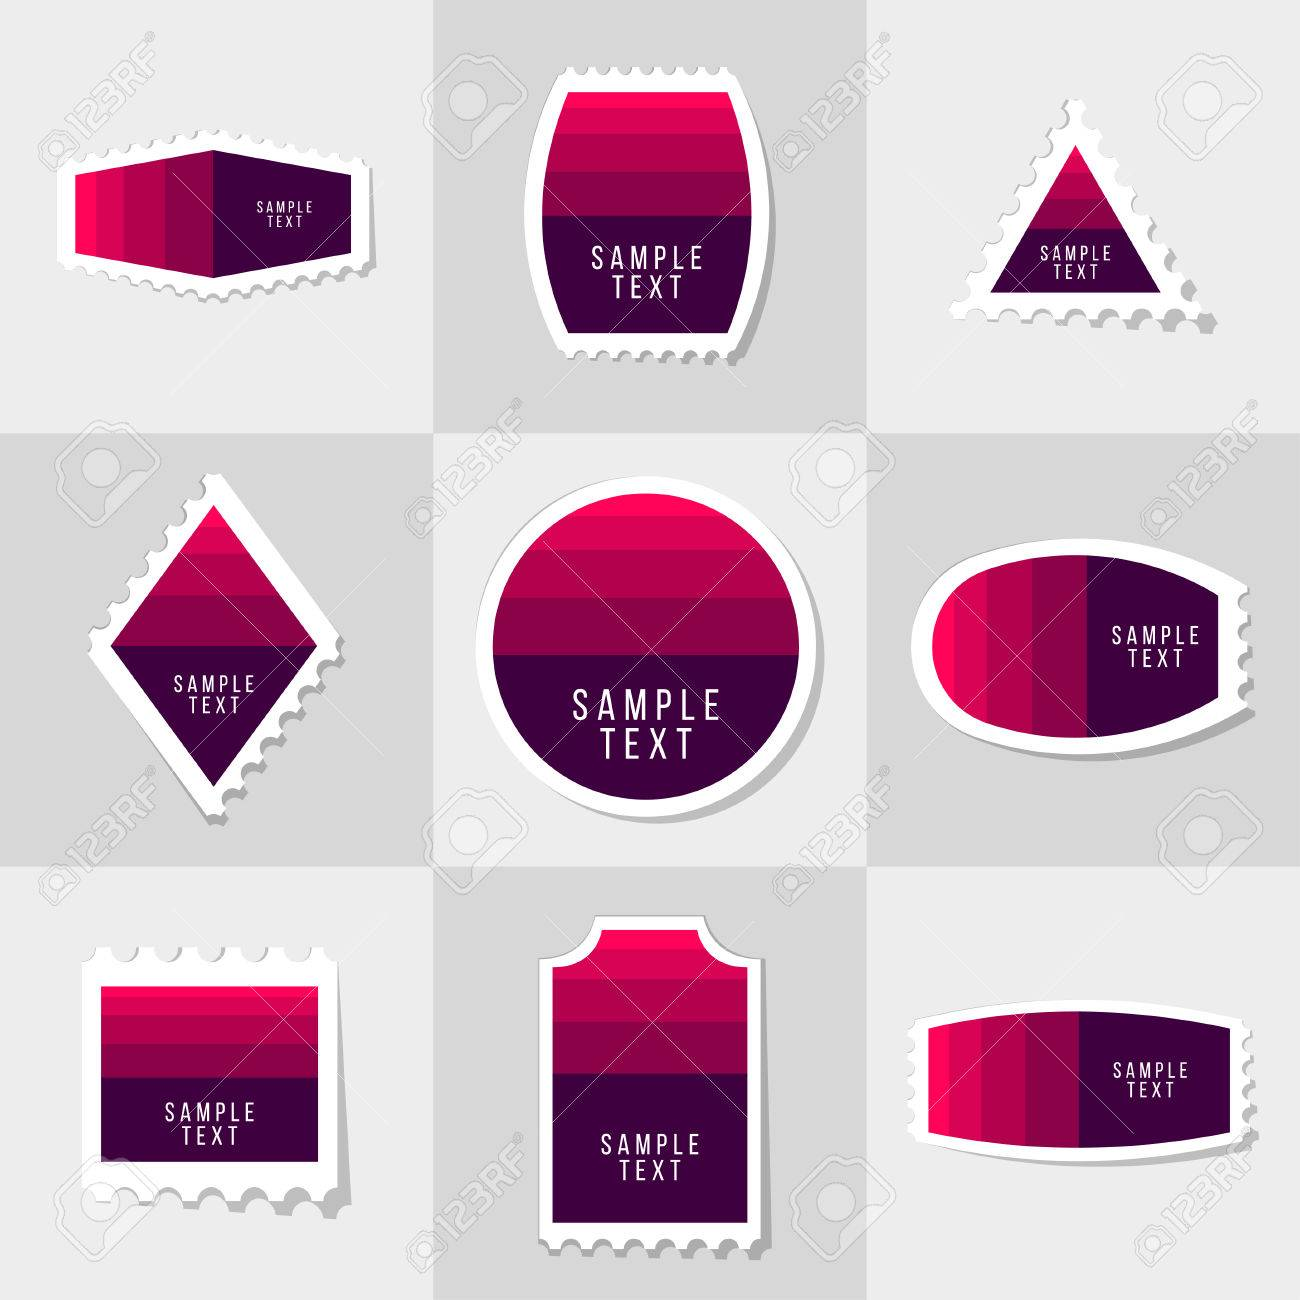 Collection Of Sample Logo And Text Postage Stamp, Cards, Notes ...